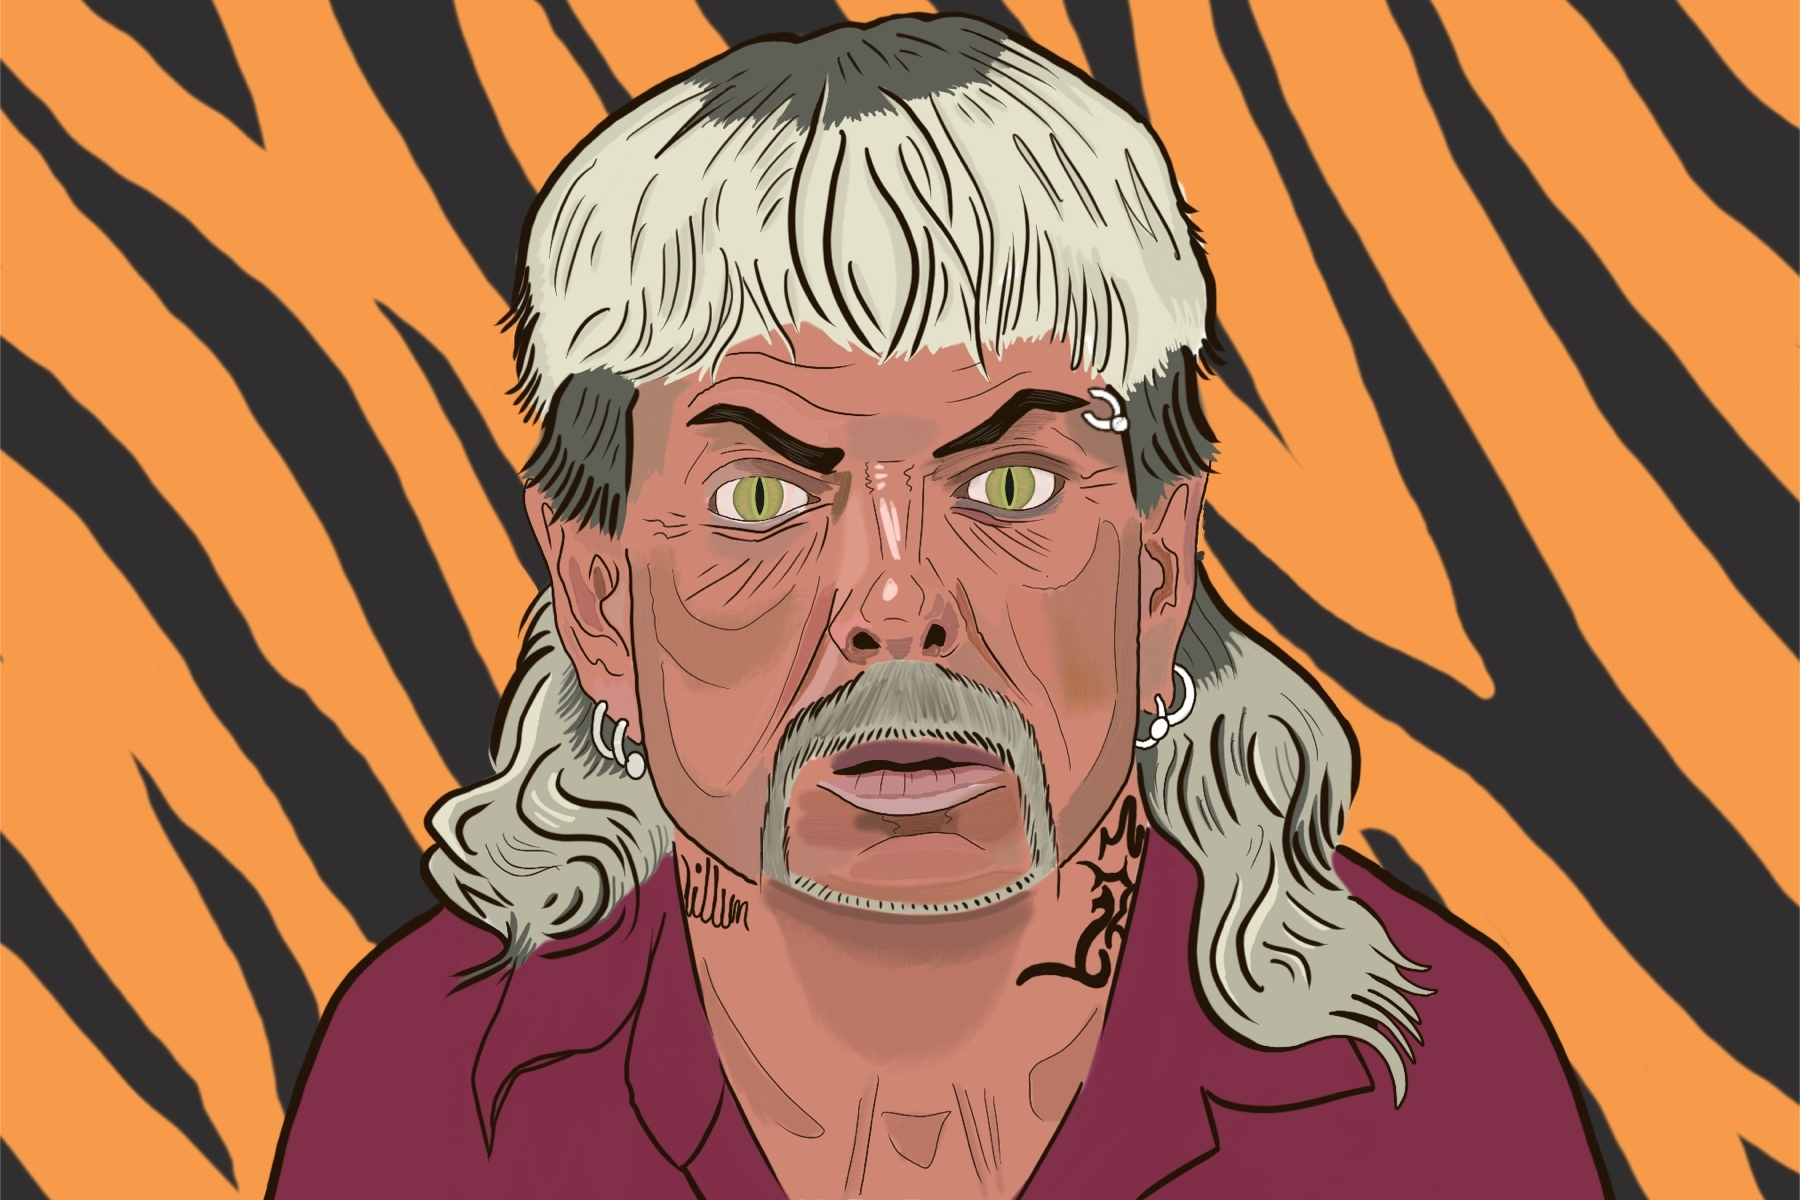 Illustration by Drew Parrott of Joe Exotic from Tiger King